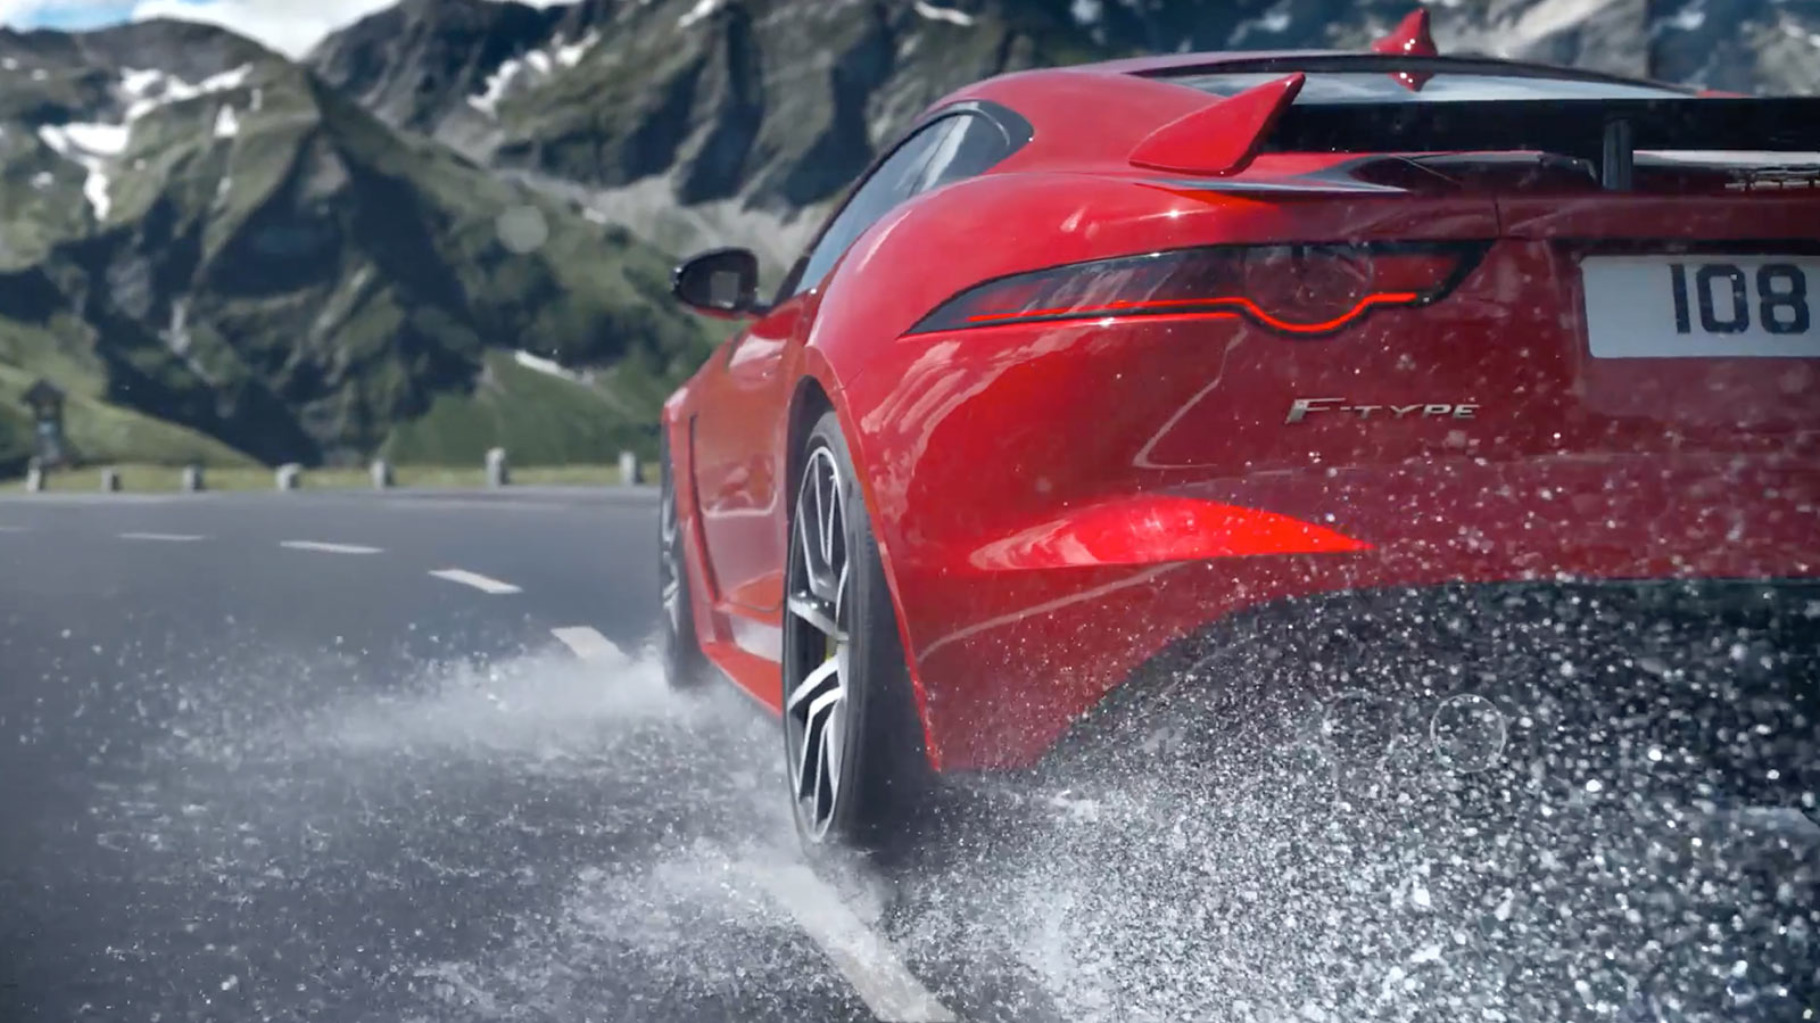 A jaguar f-type driving on a wet road kicking up water as it speeds.